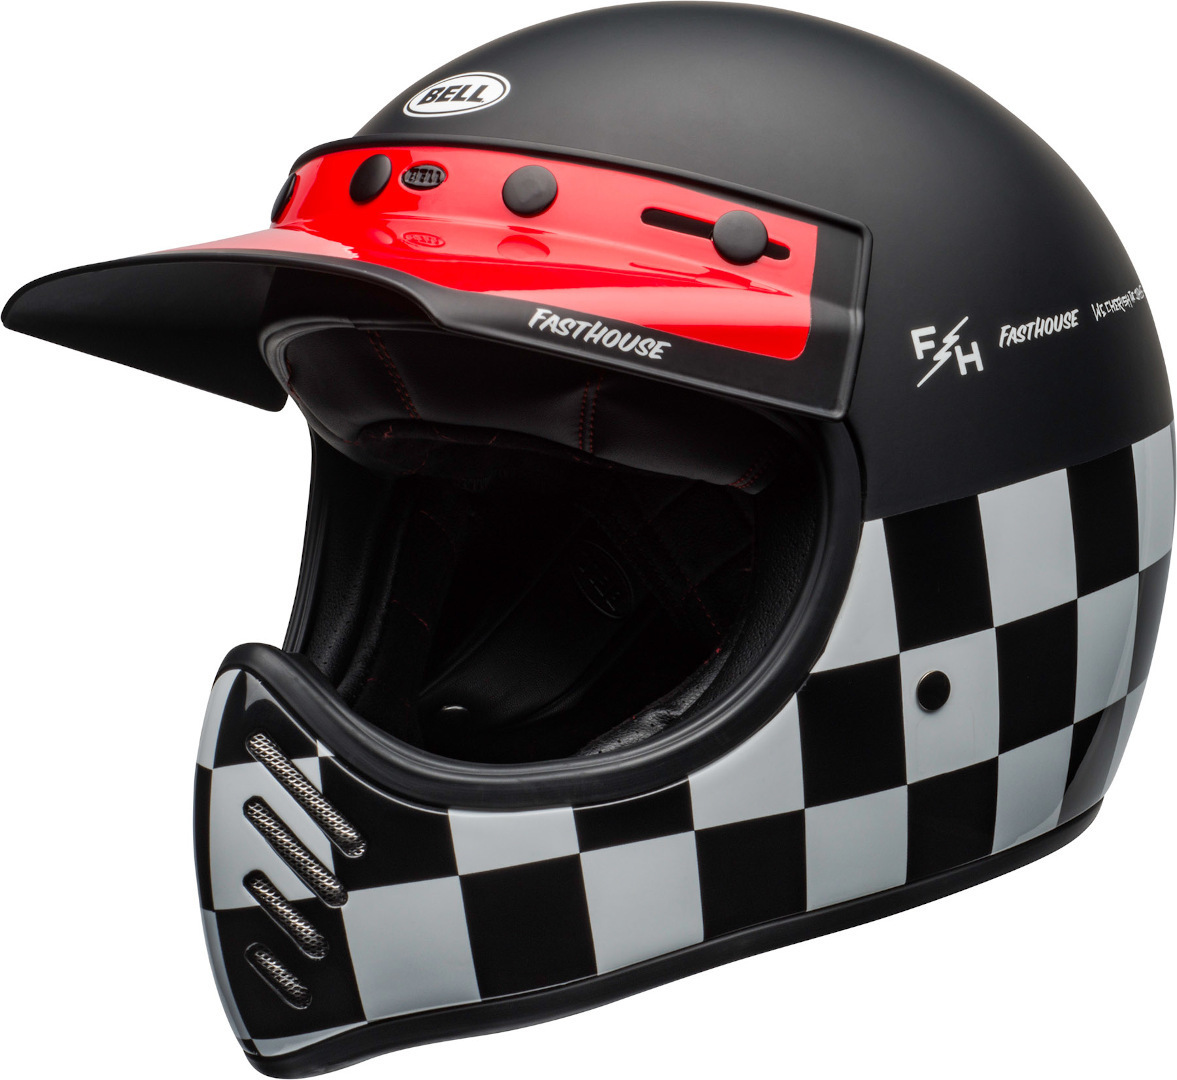 Bell Moto-3 Fasthouse Checkers Trial Helm, schwarz-weiss-rot, Größe S, schwarz-weiss-rot, Größe S